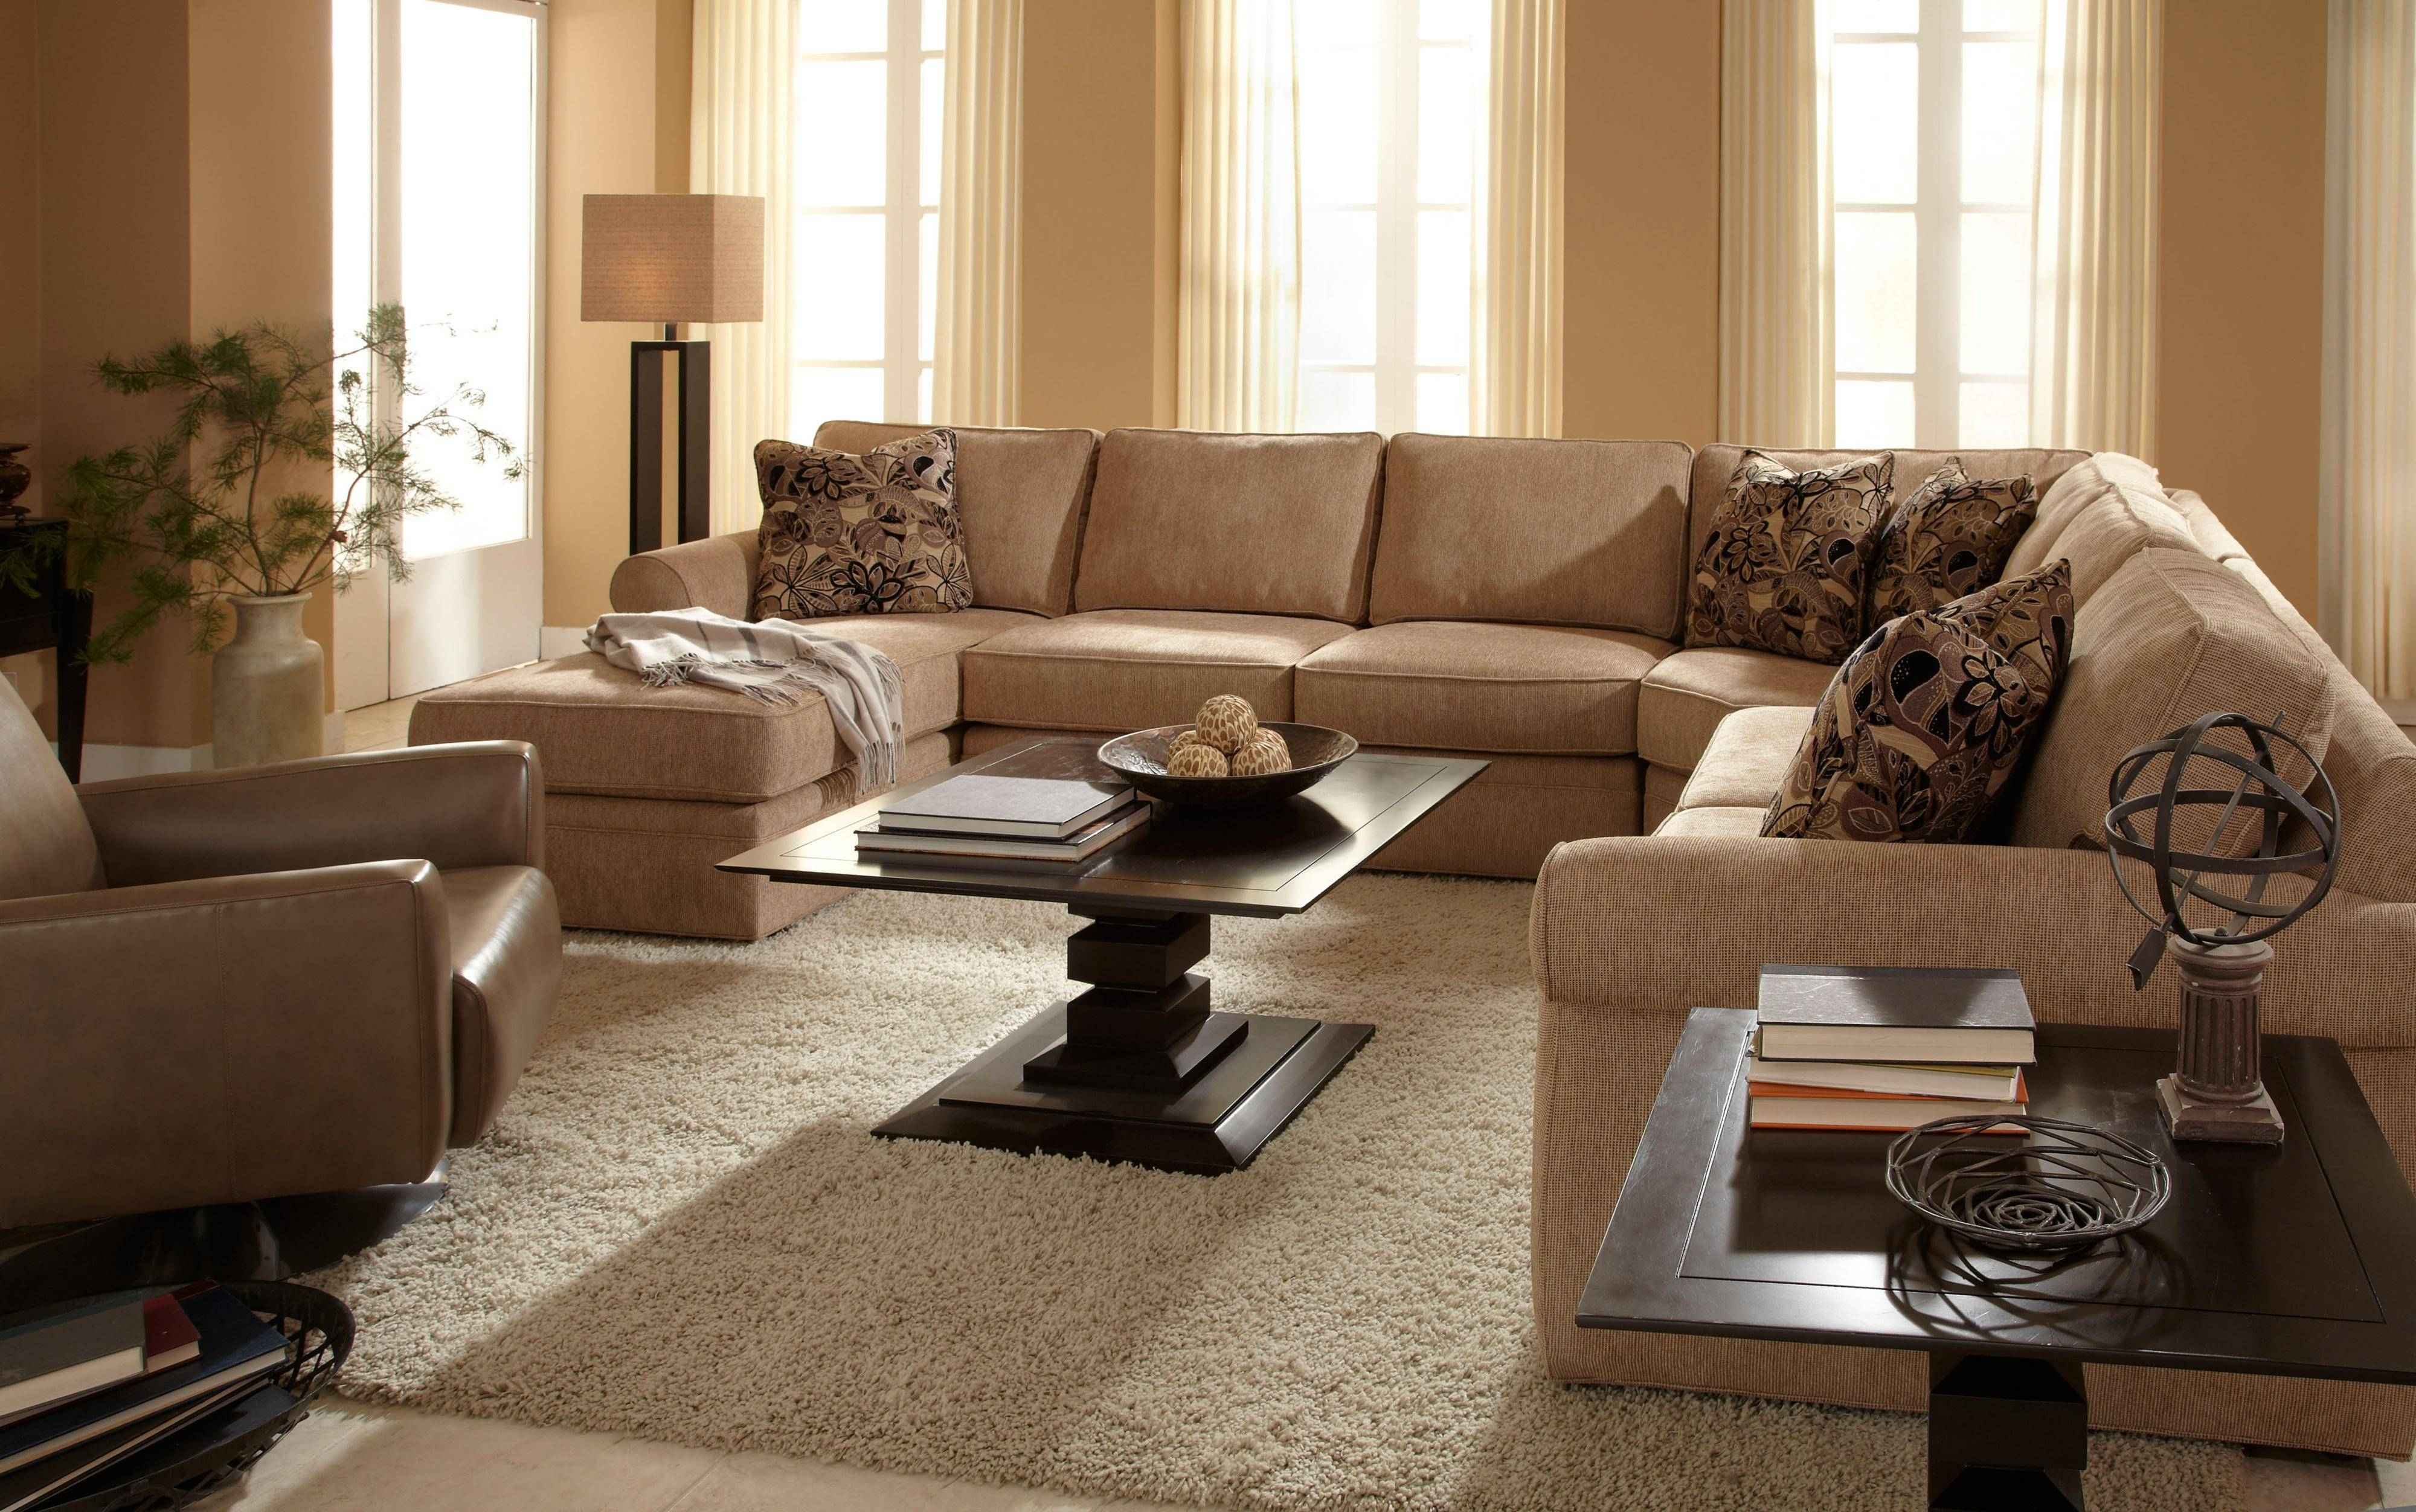 Broyhill Furniture Veronica Right Arm Facing Customizable Chaise in Broyhill Sectional Sofa (Image 14 of 30)